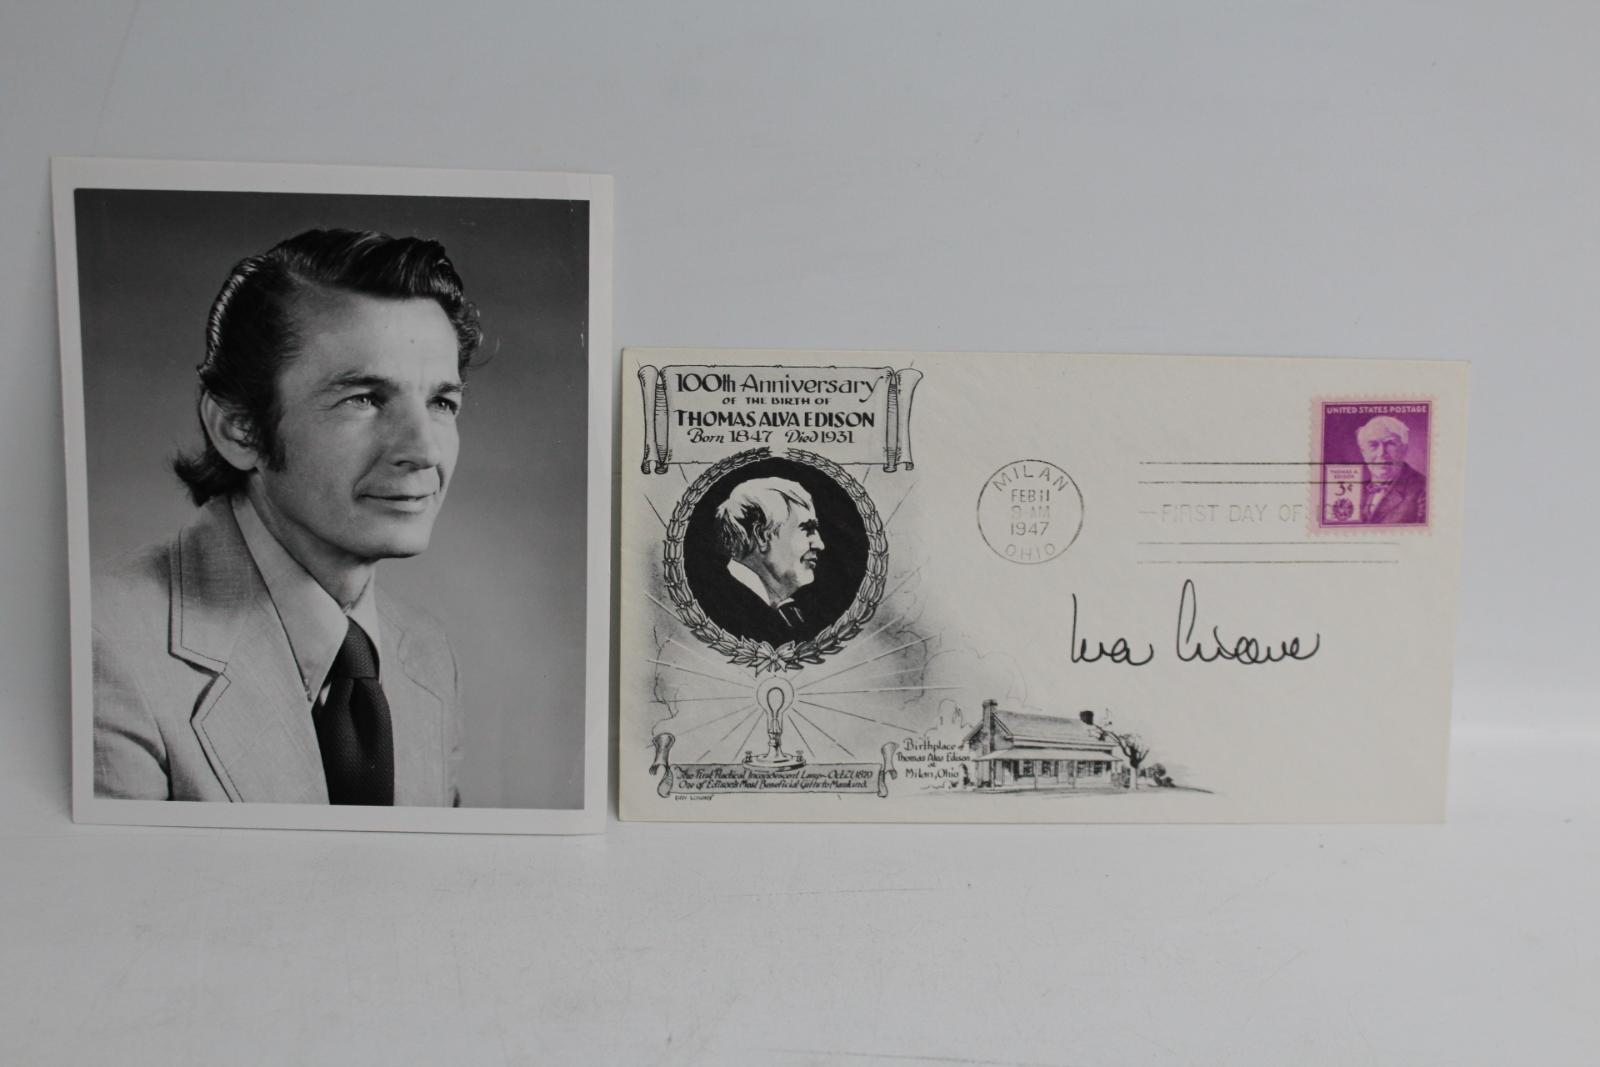 IVAR-GIAEVER-Signed-FDC-Autographed-First-Day-Cover-Nobel-Prize-Winner-Photo miniatura 2